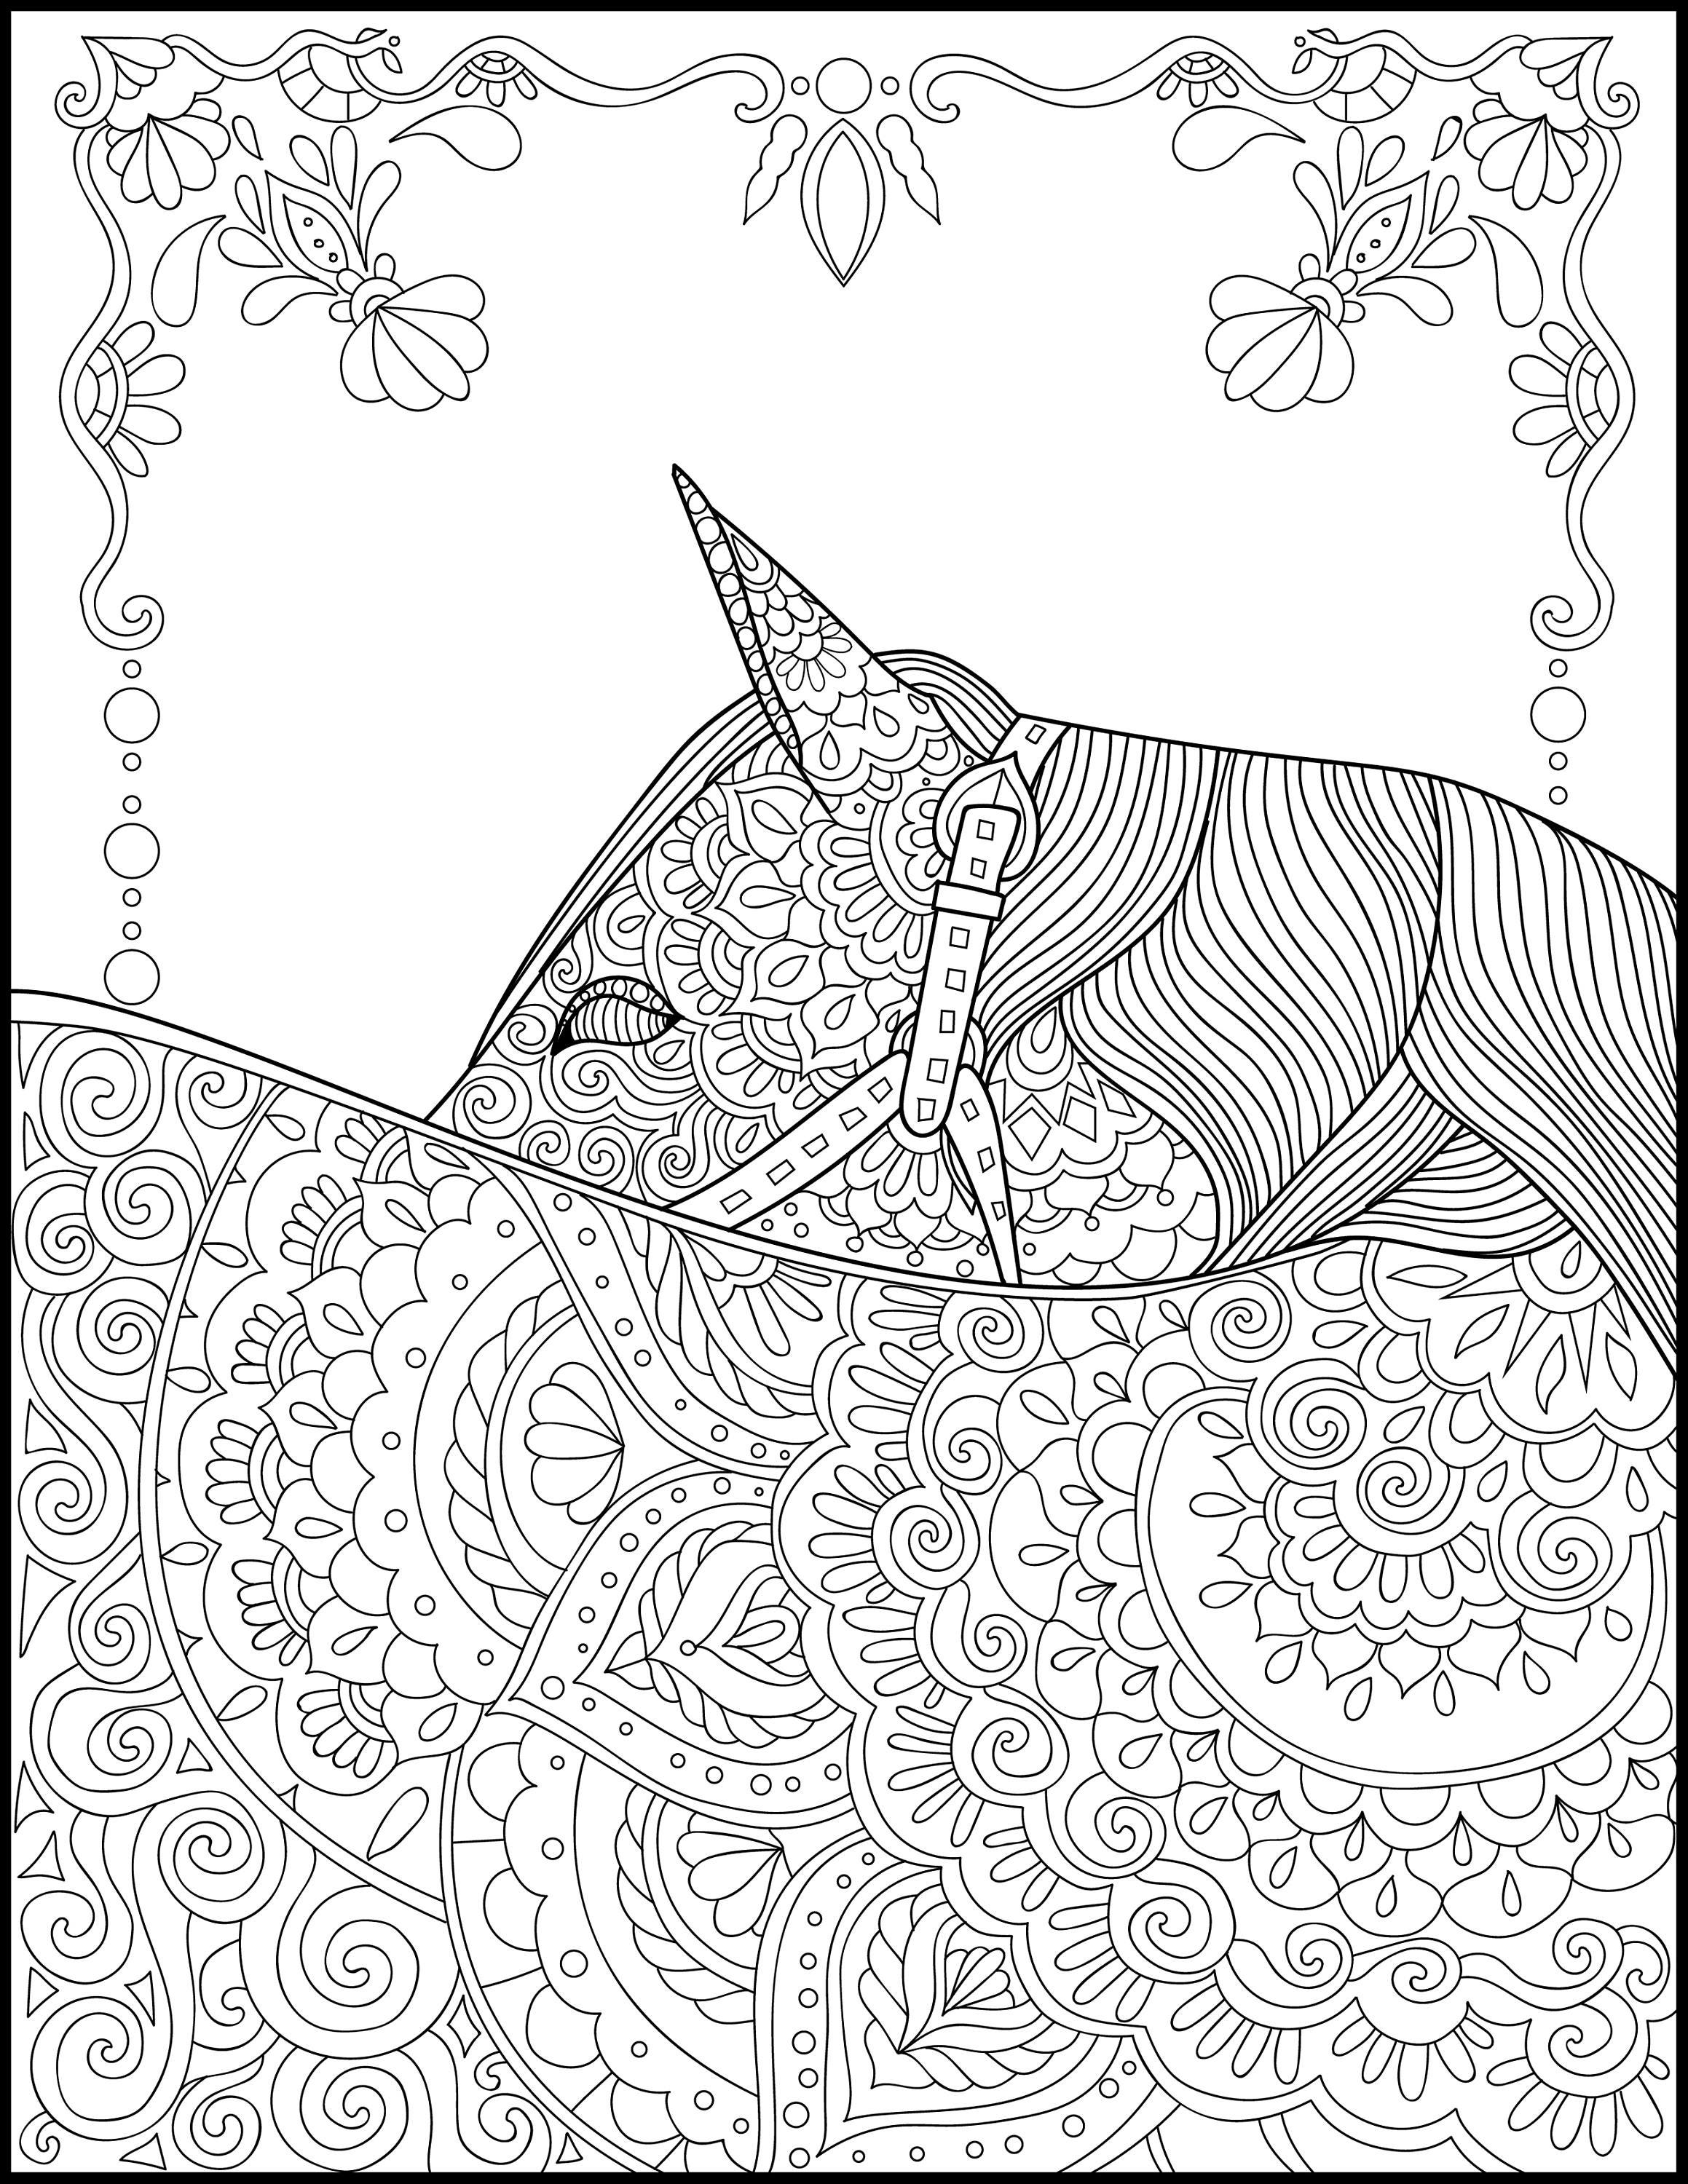 Printable Coloring Page Adult Coloring Pages Horse | Etsy